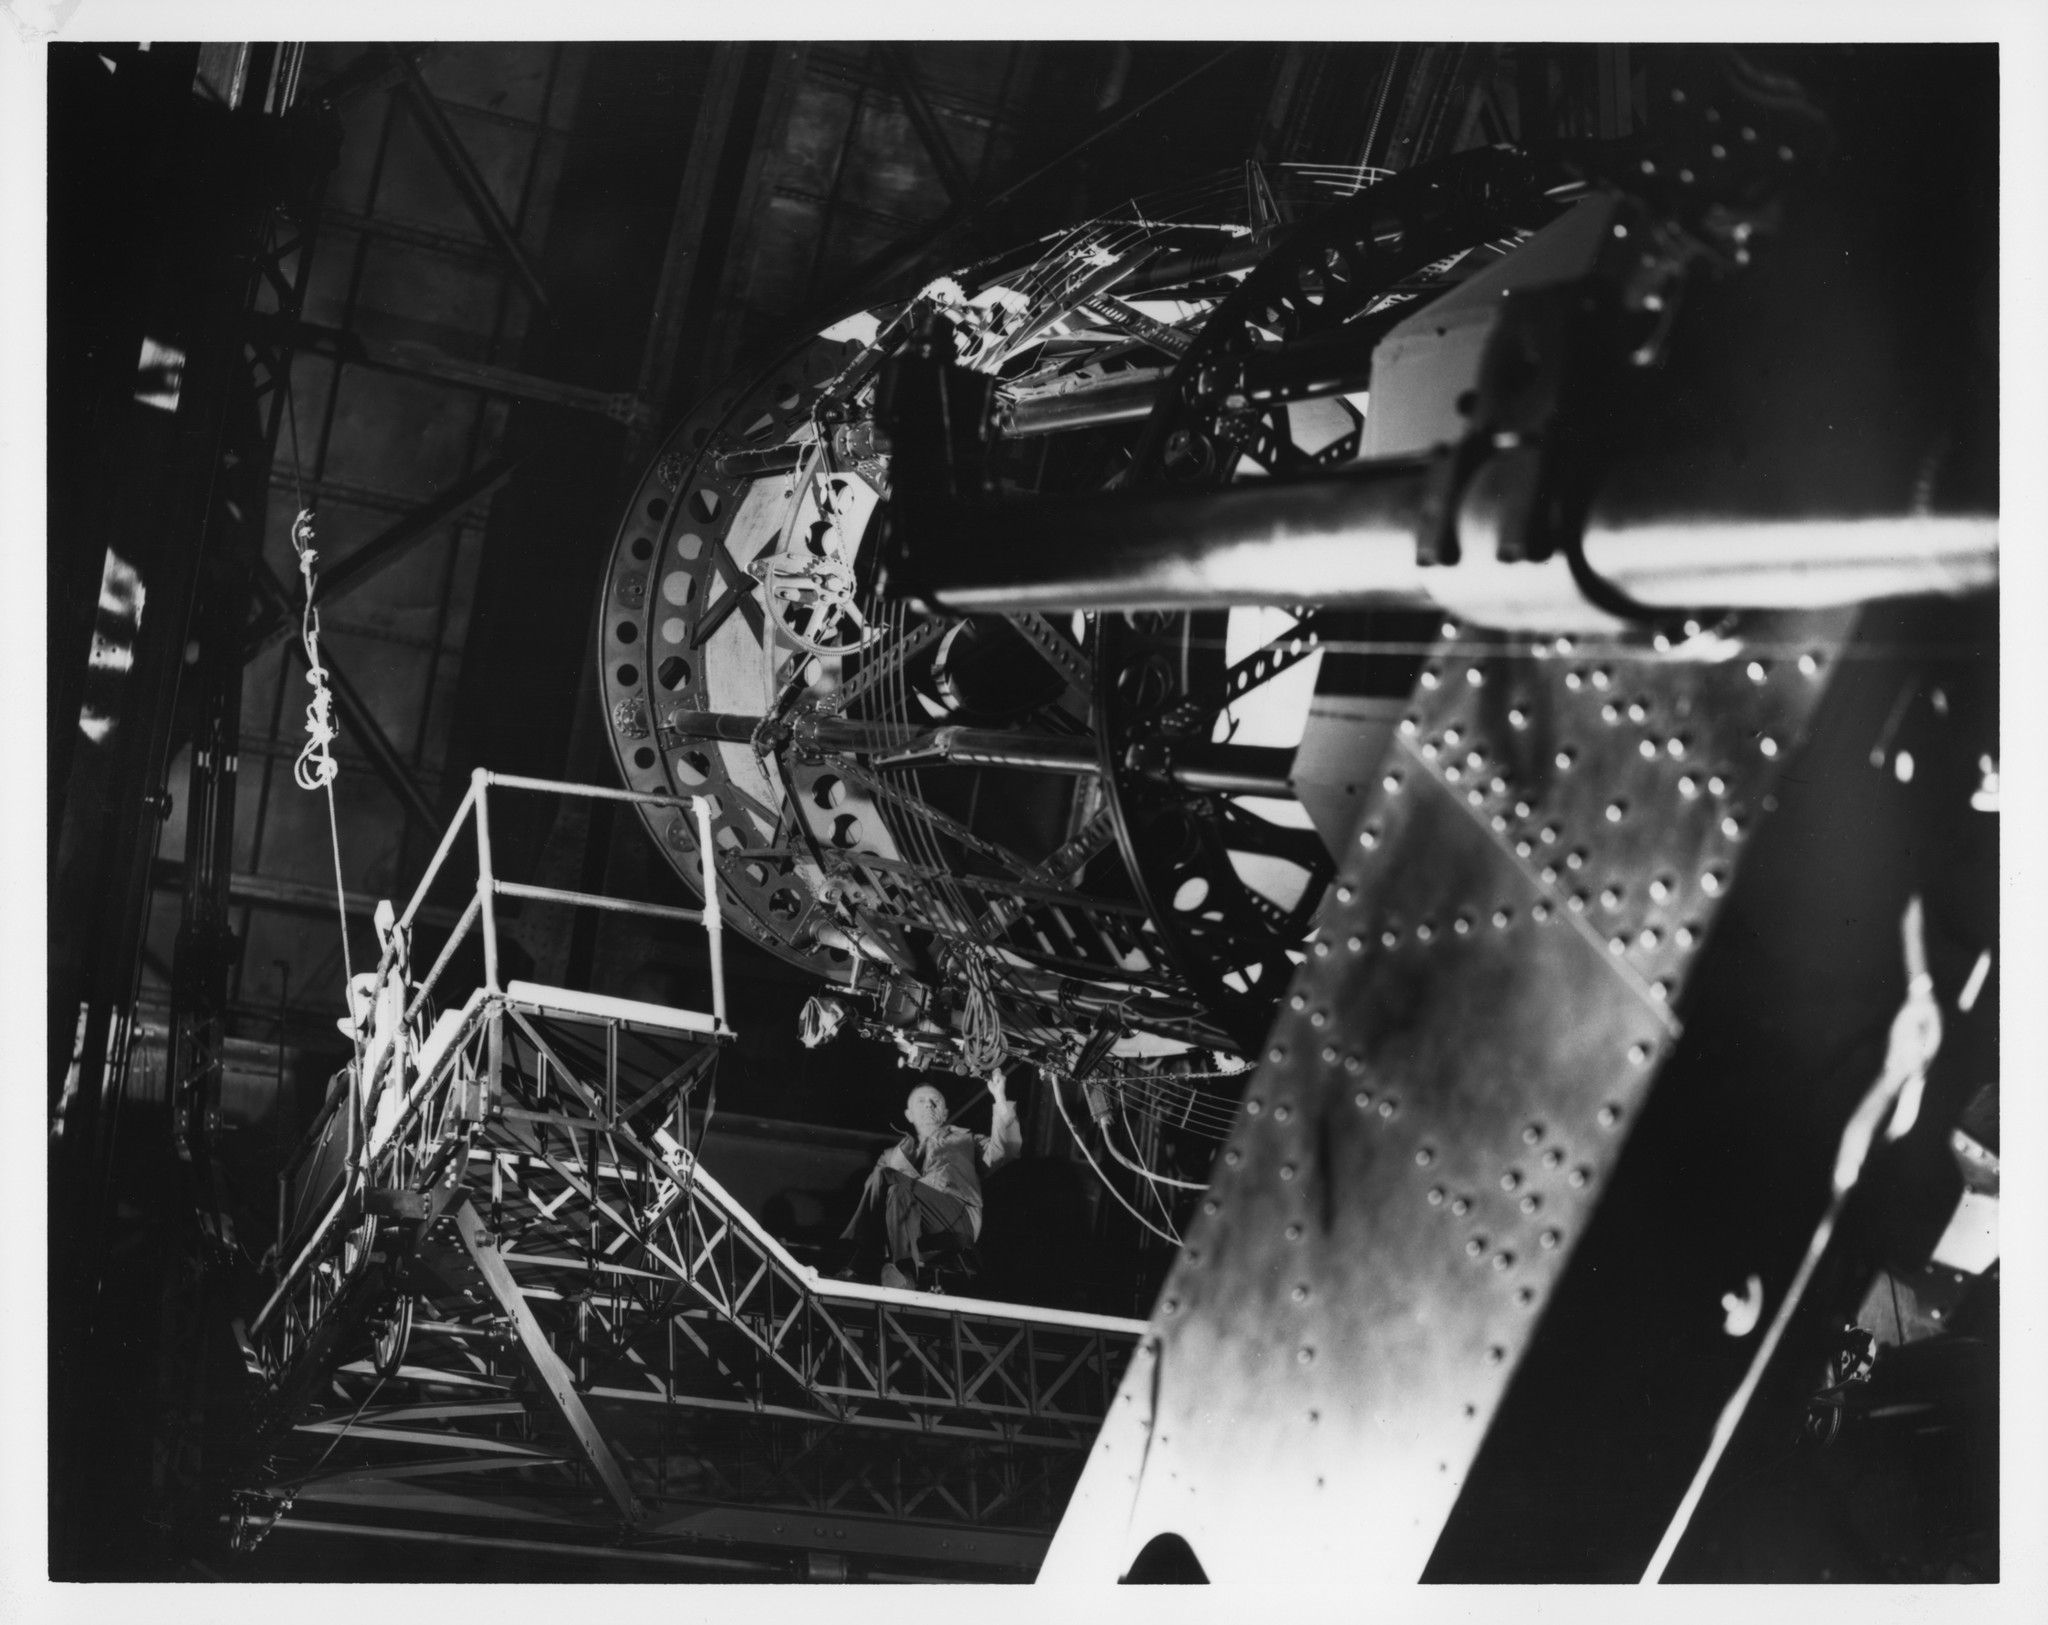 Edwin P. Hubble seated on the Newtonian platform of the Hooker 100-inch reflecting telescope, as viewed from the dome floor, circa 1940.